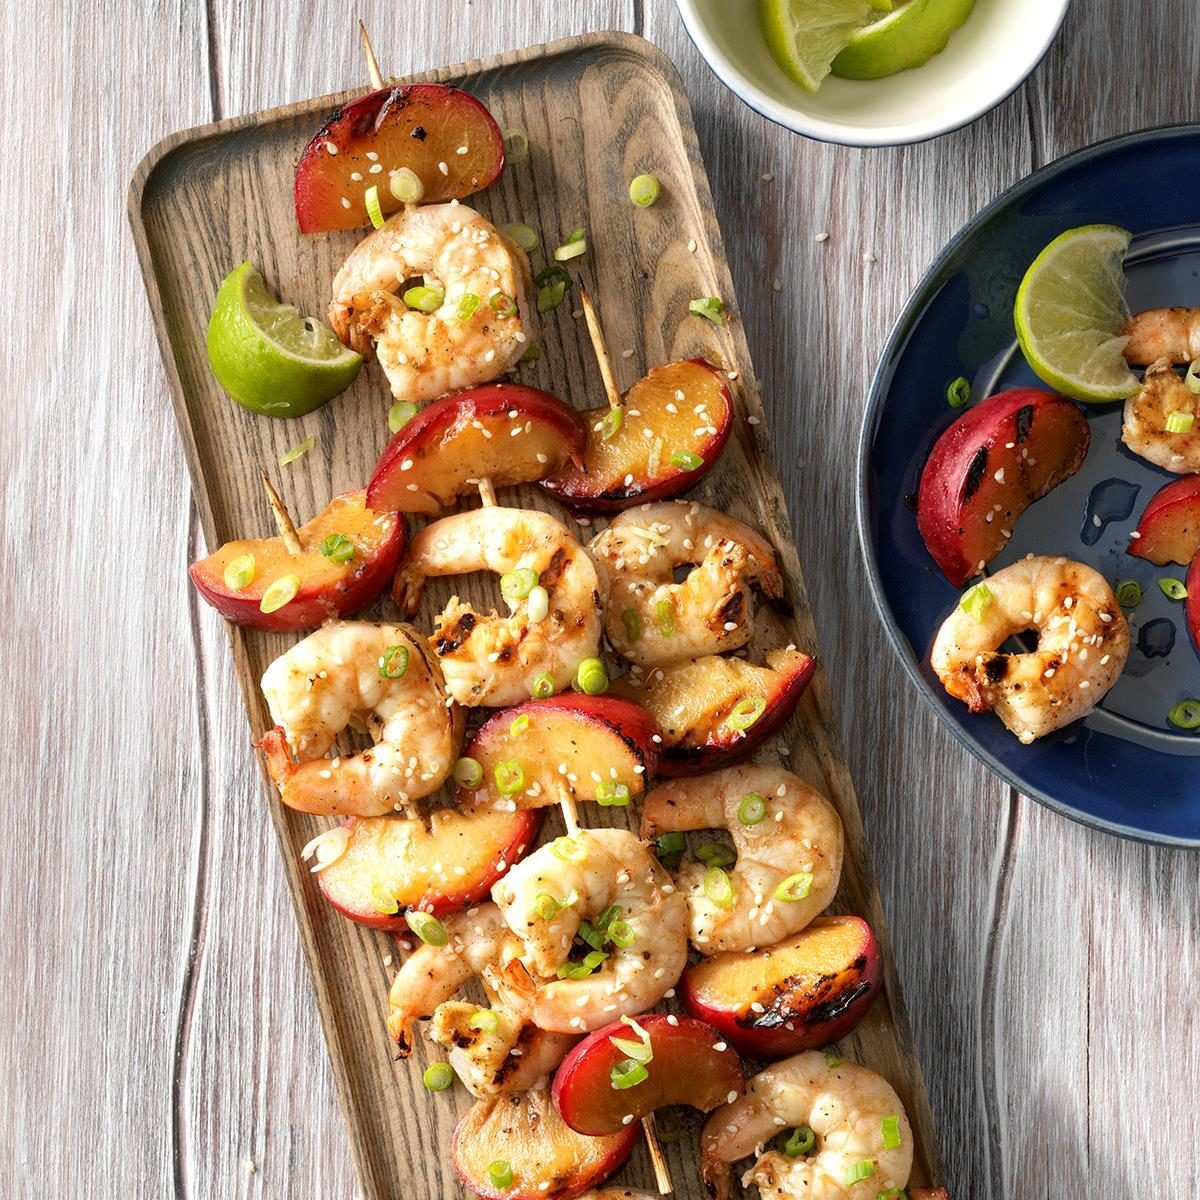 Skewered Ginger Shrimp with Plums